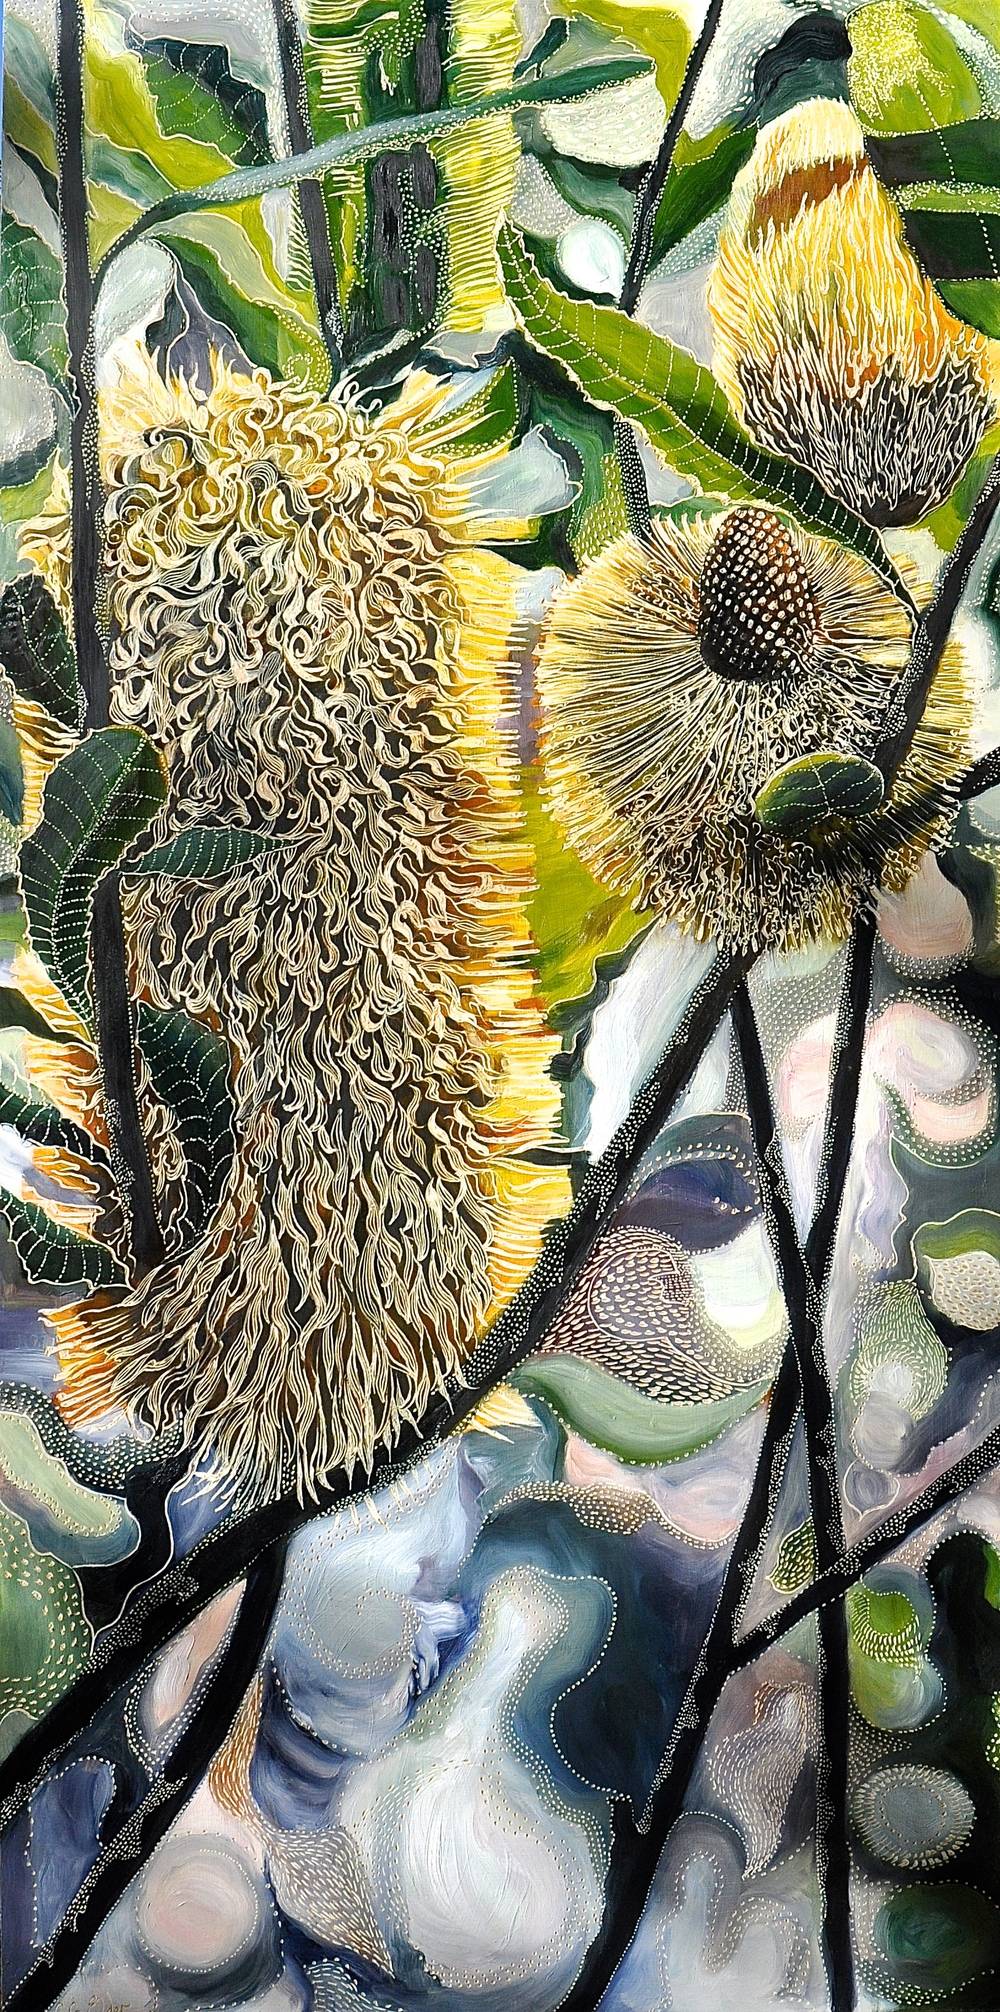 Homage to Swamp Banksias